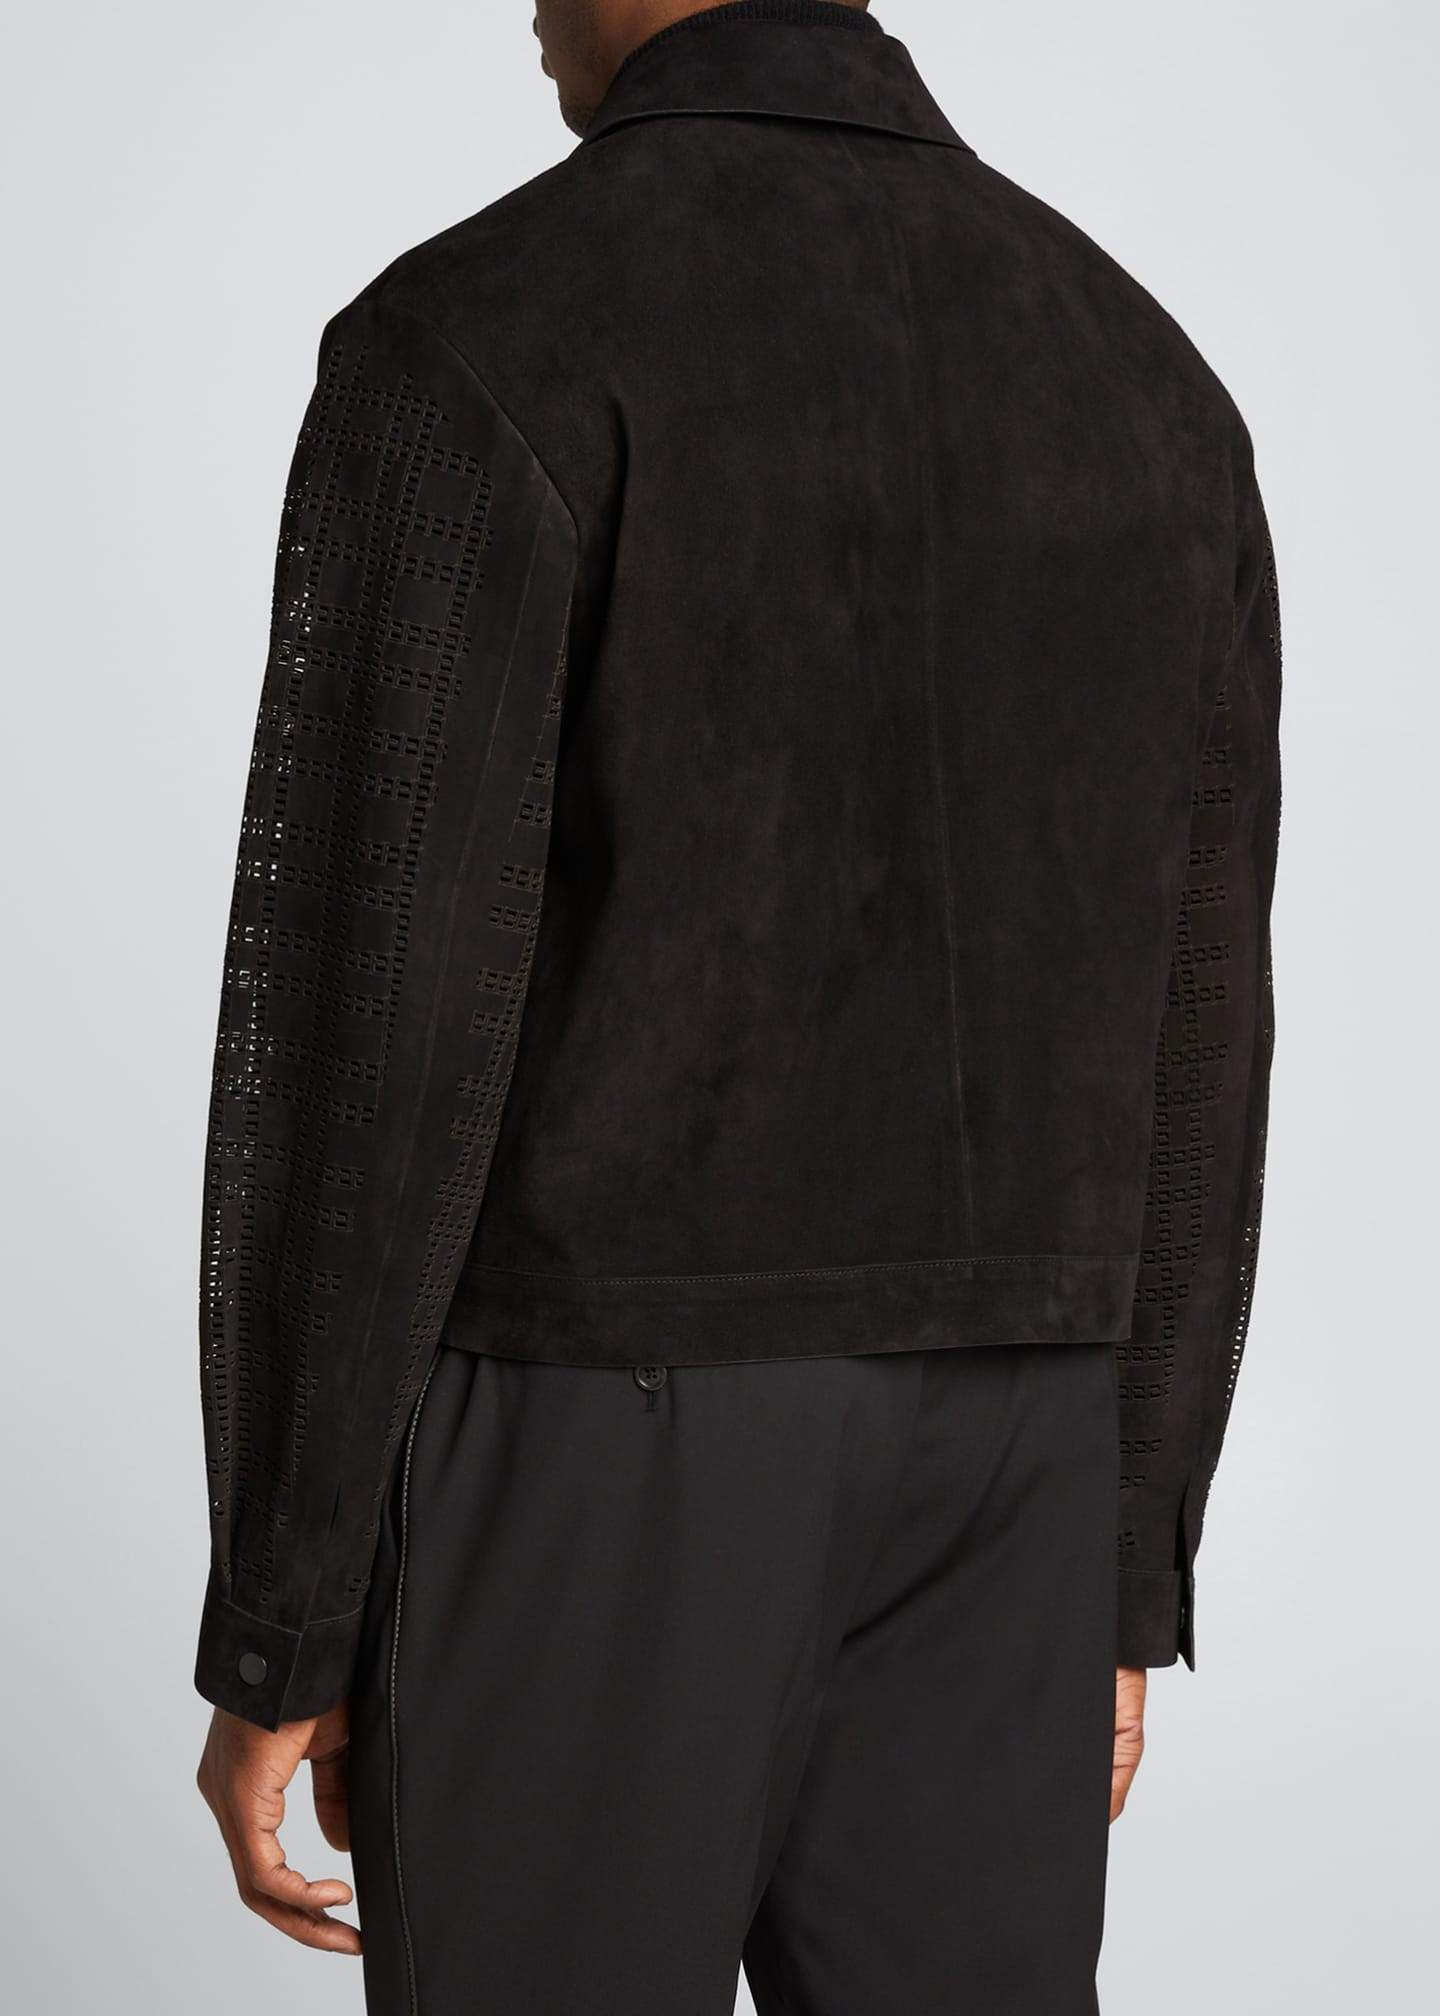 Image 2 of 5: Men's FF Laser-Cut Suede Jacket